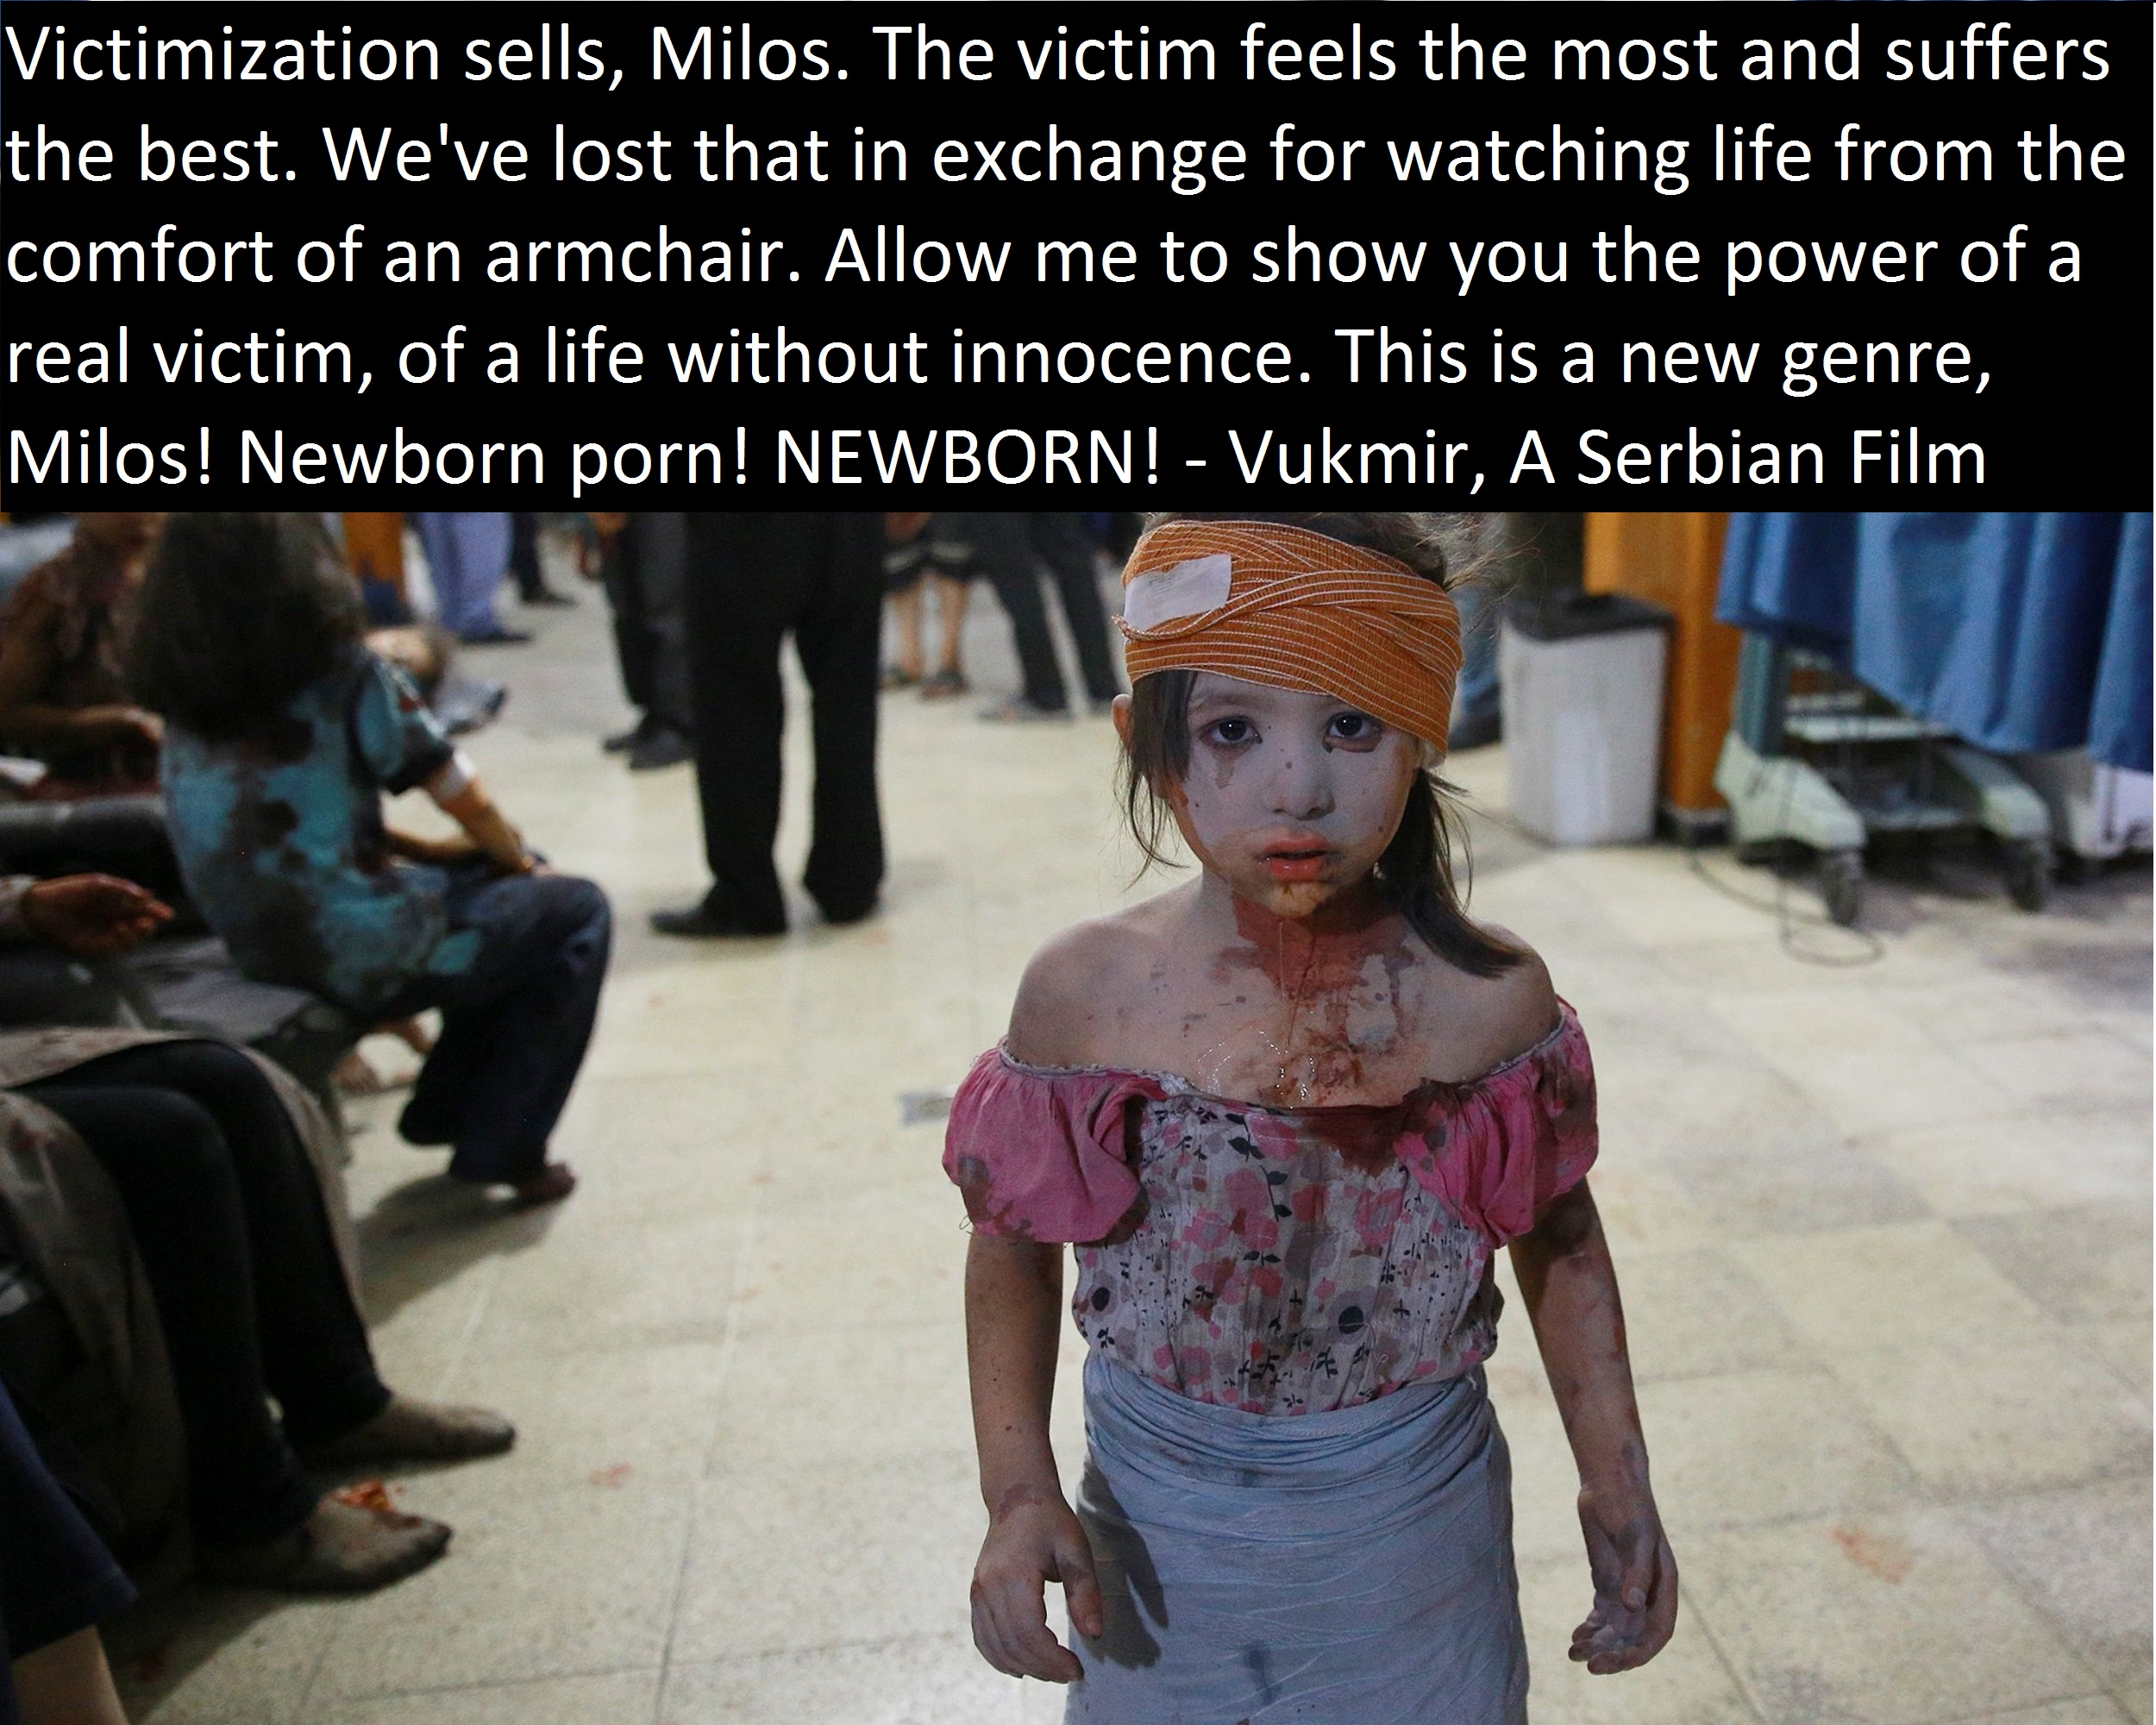 """Victimization sells…."" – A Serbian Film [2500×2000]"